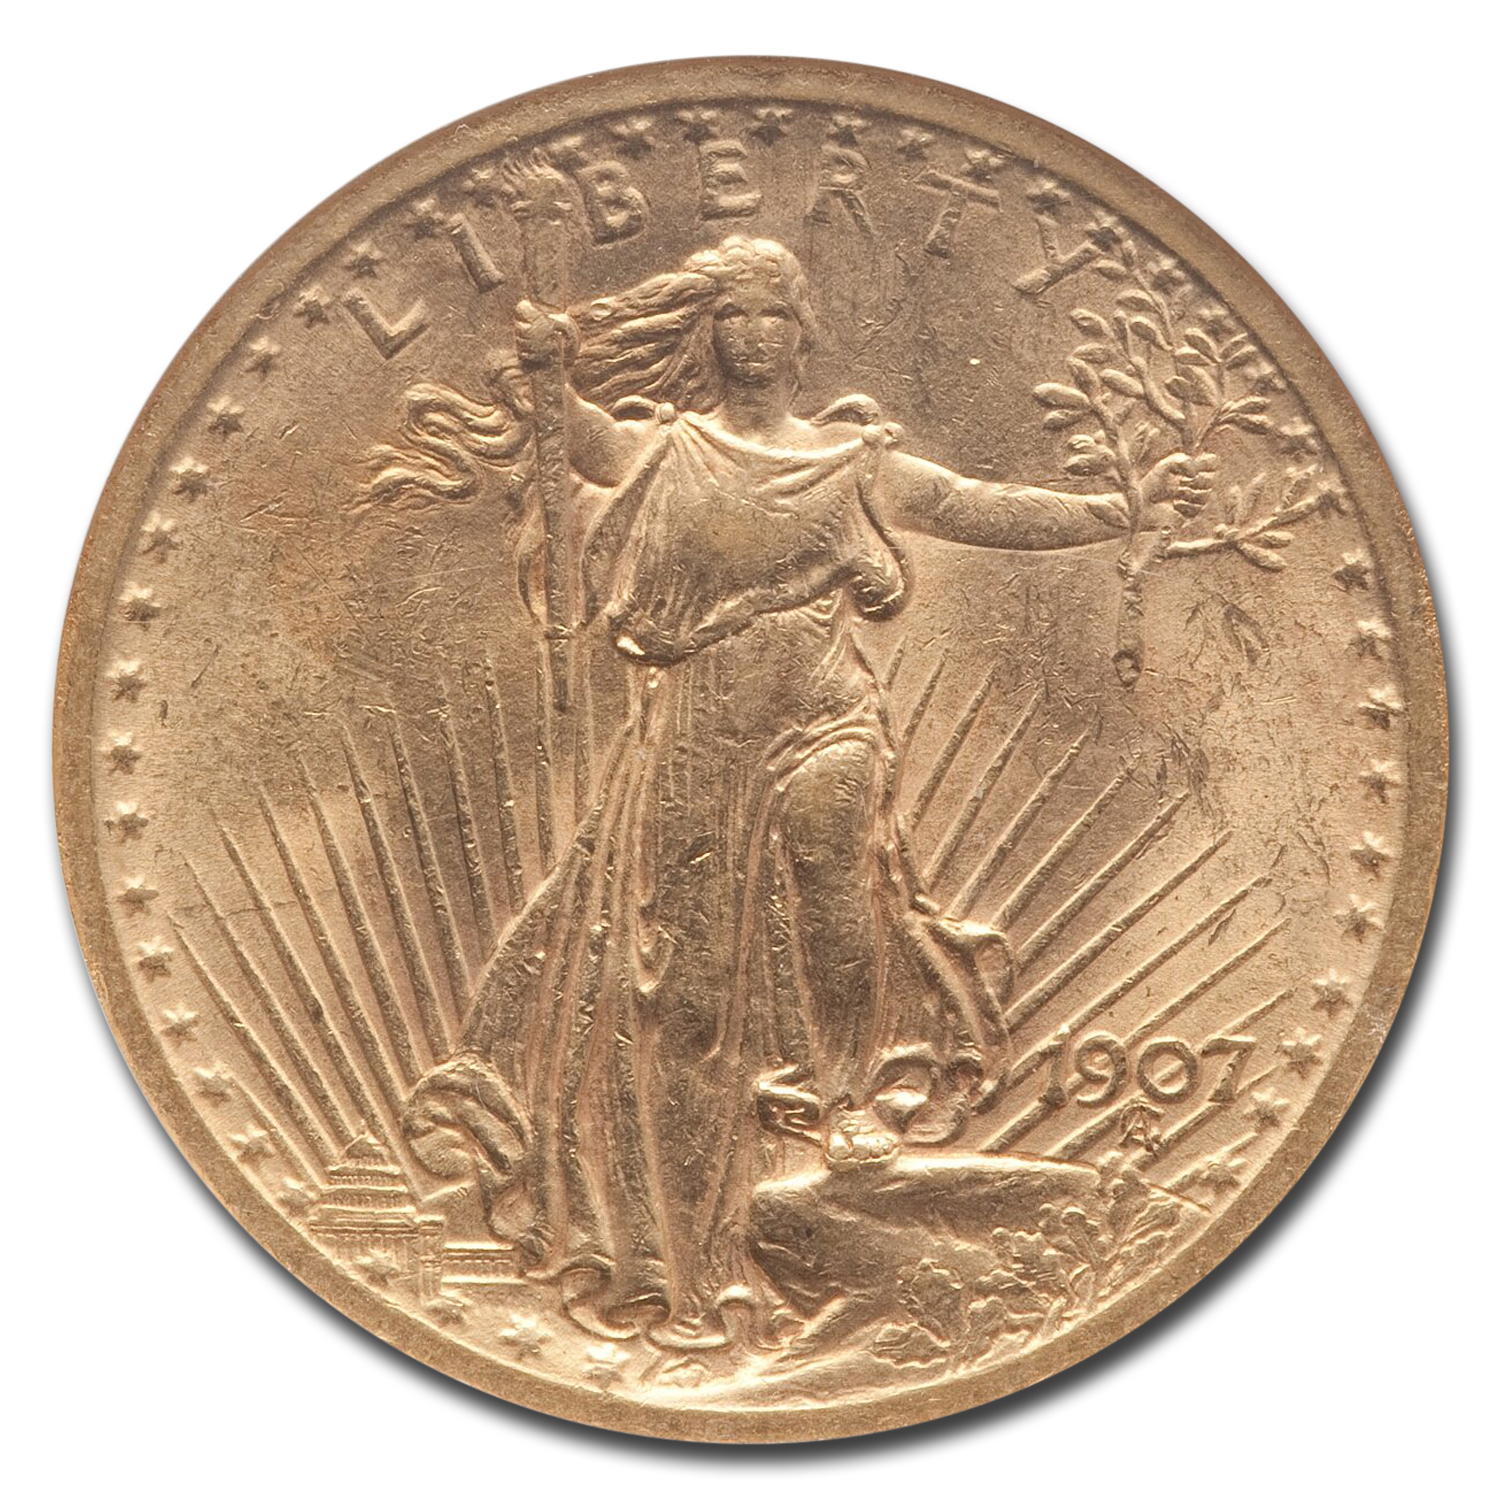 1907 $20 St. Gaudens Gold Double Eagle - AU-58 NGC